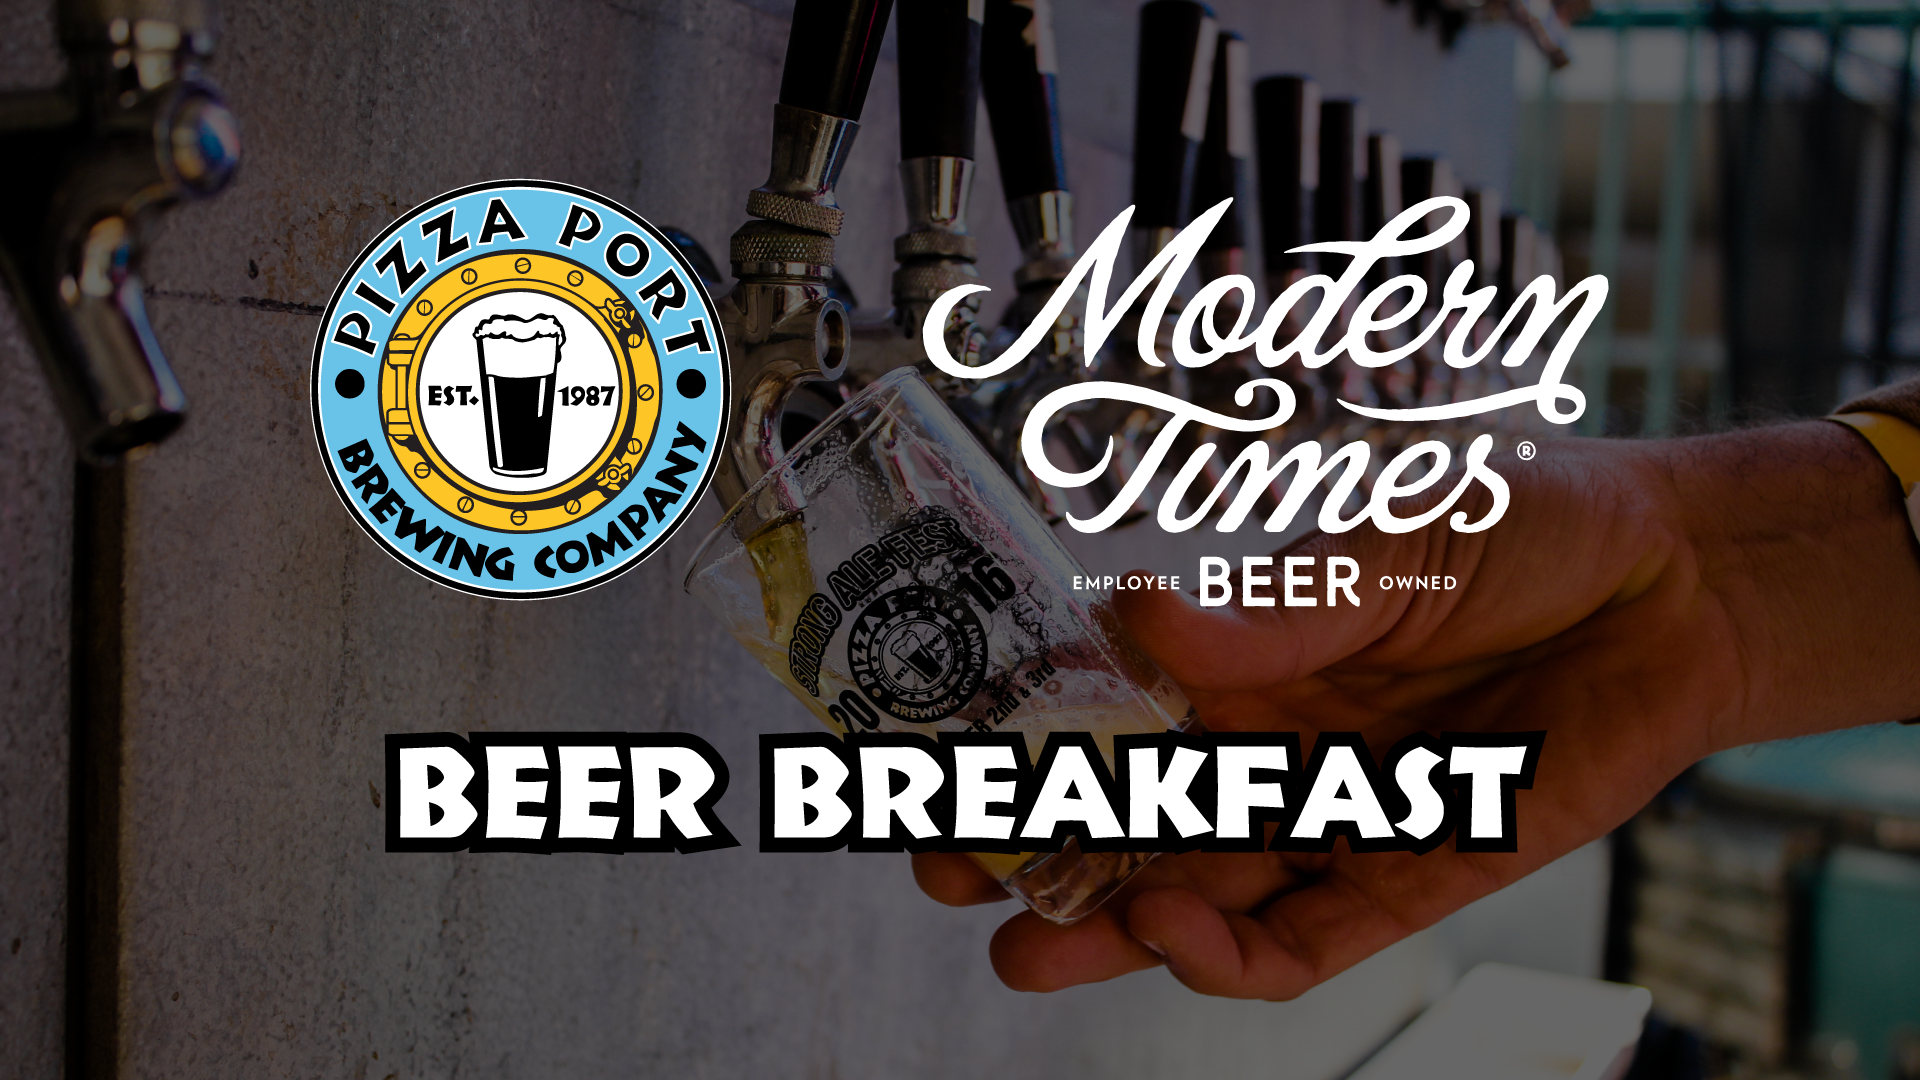 Beer Breakfast with Modern Times